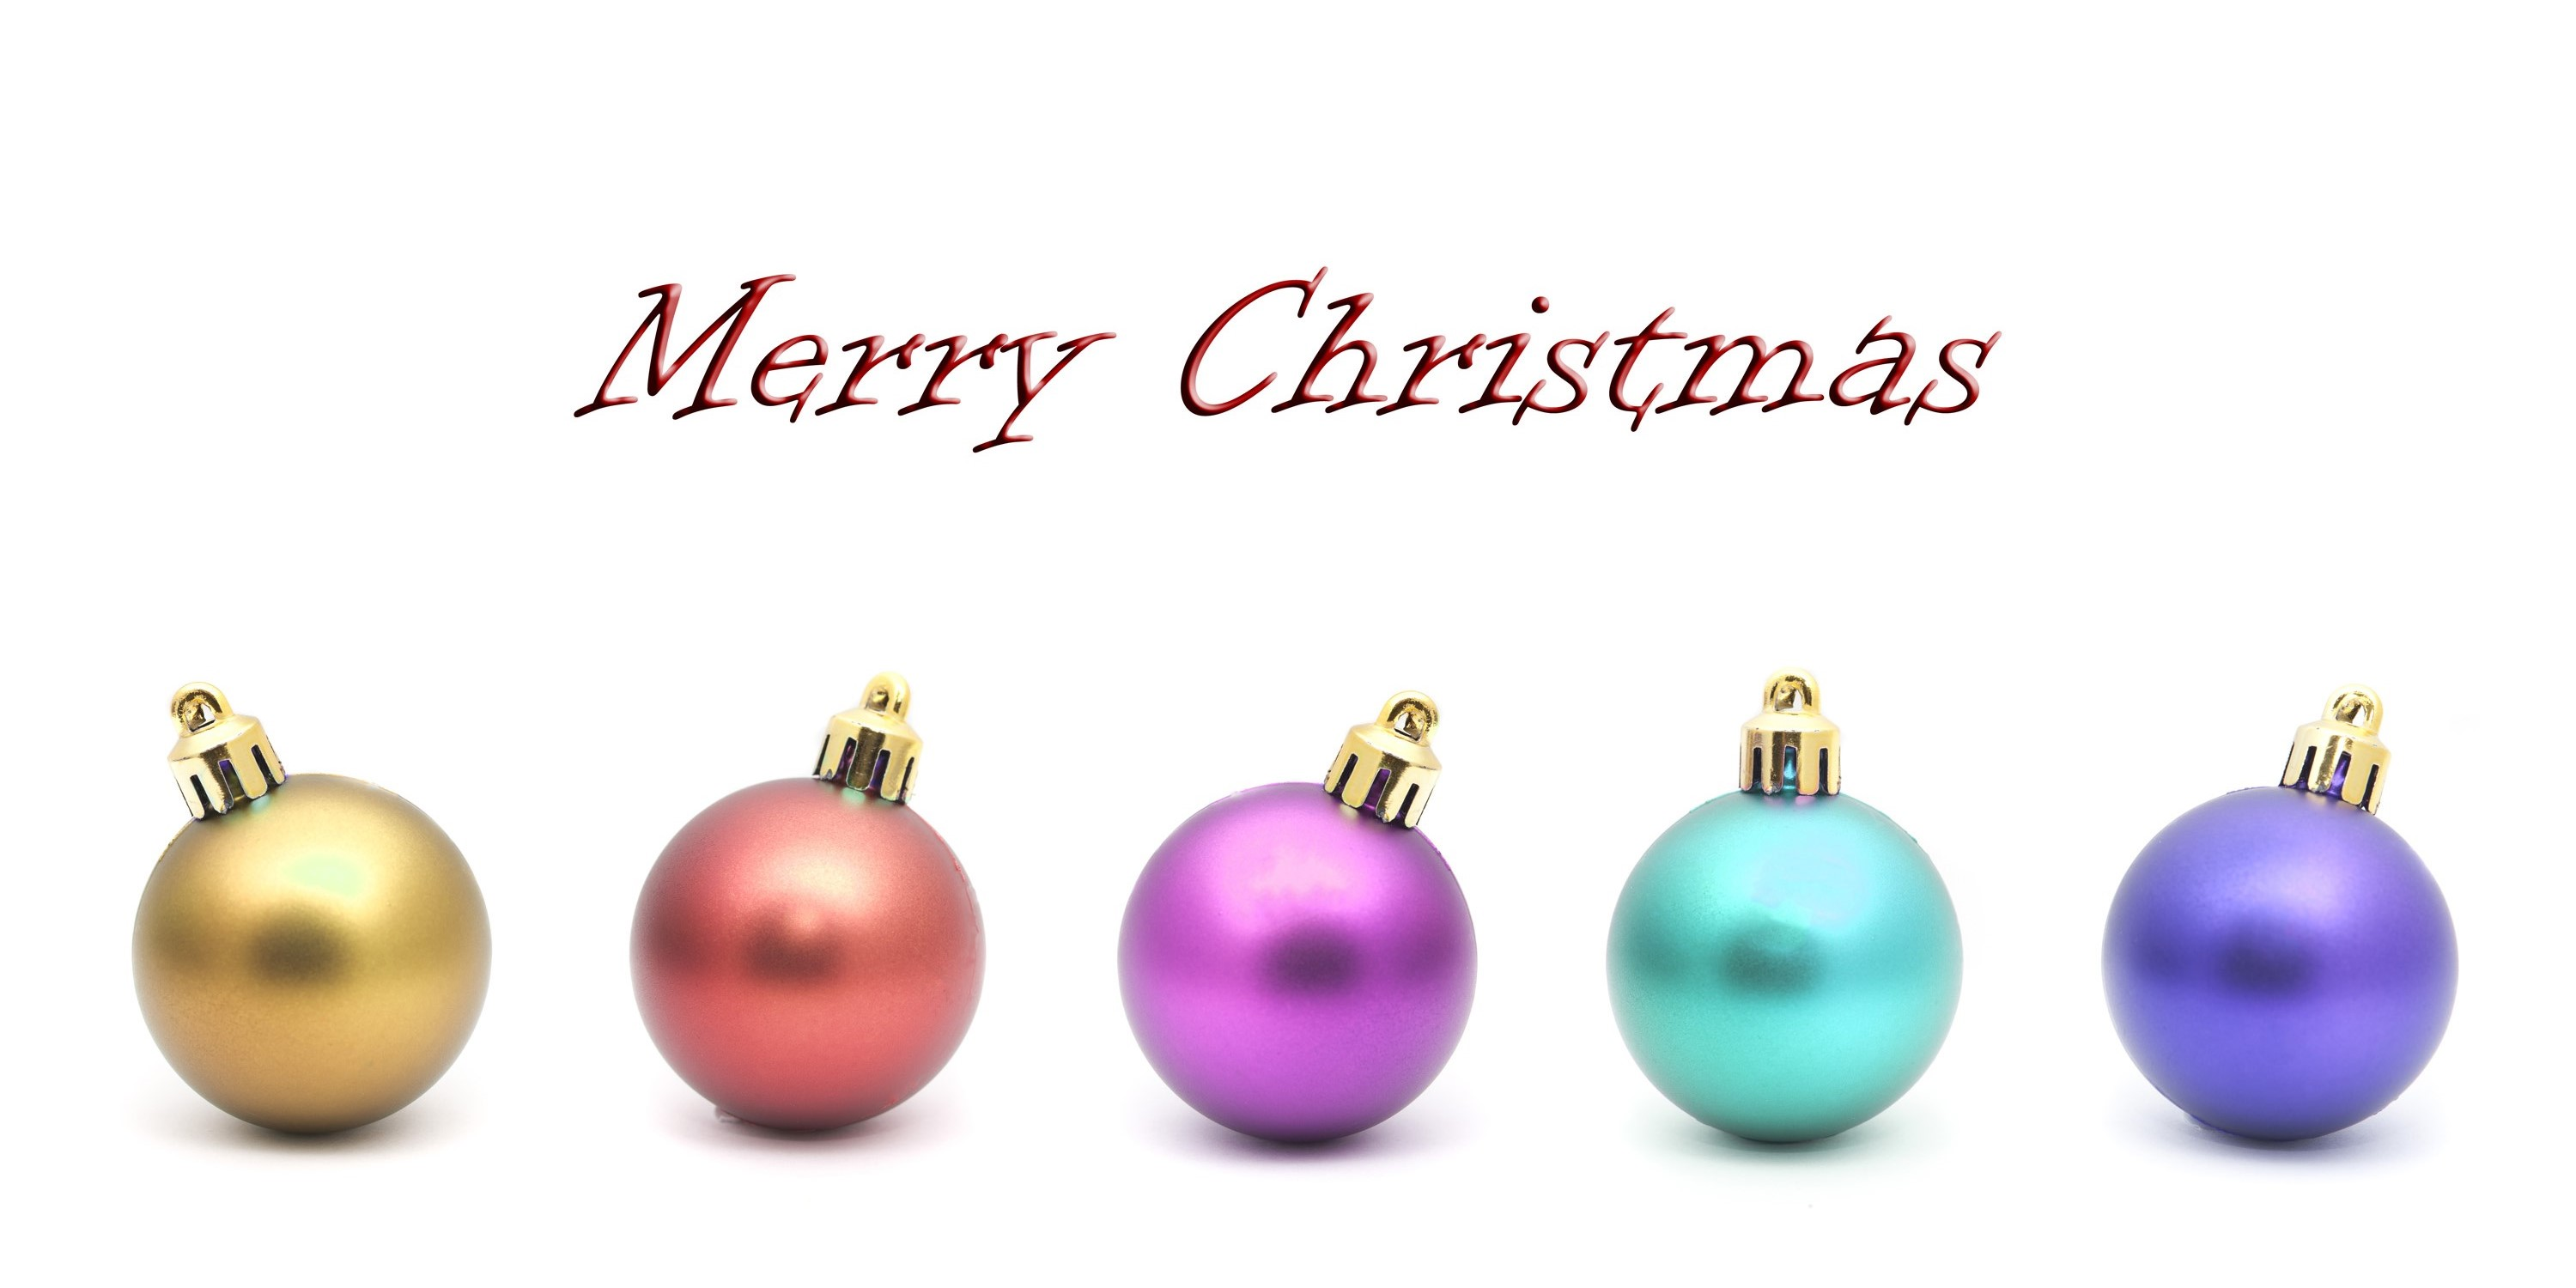 Merry Christmas greeting card with a row of colourful round baubles with shadow detail on a white background